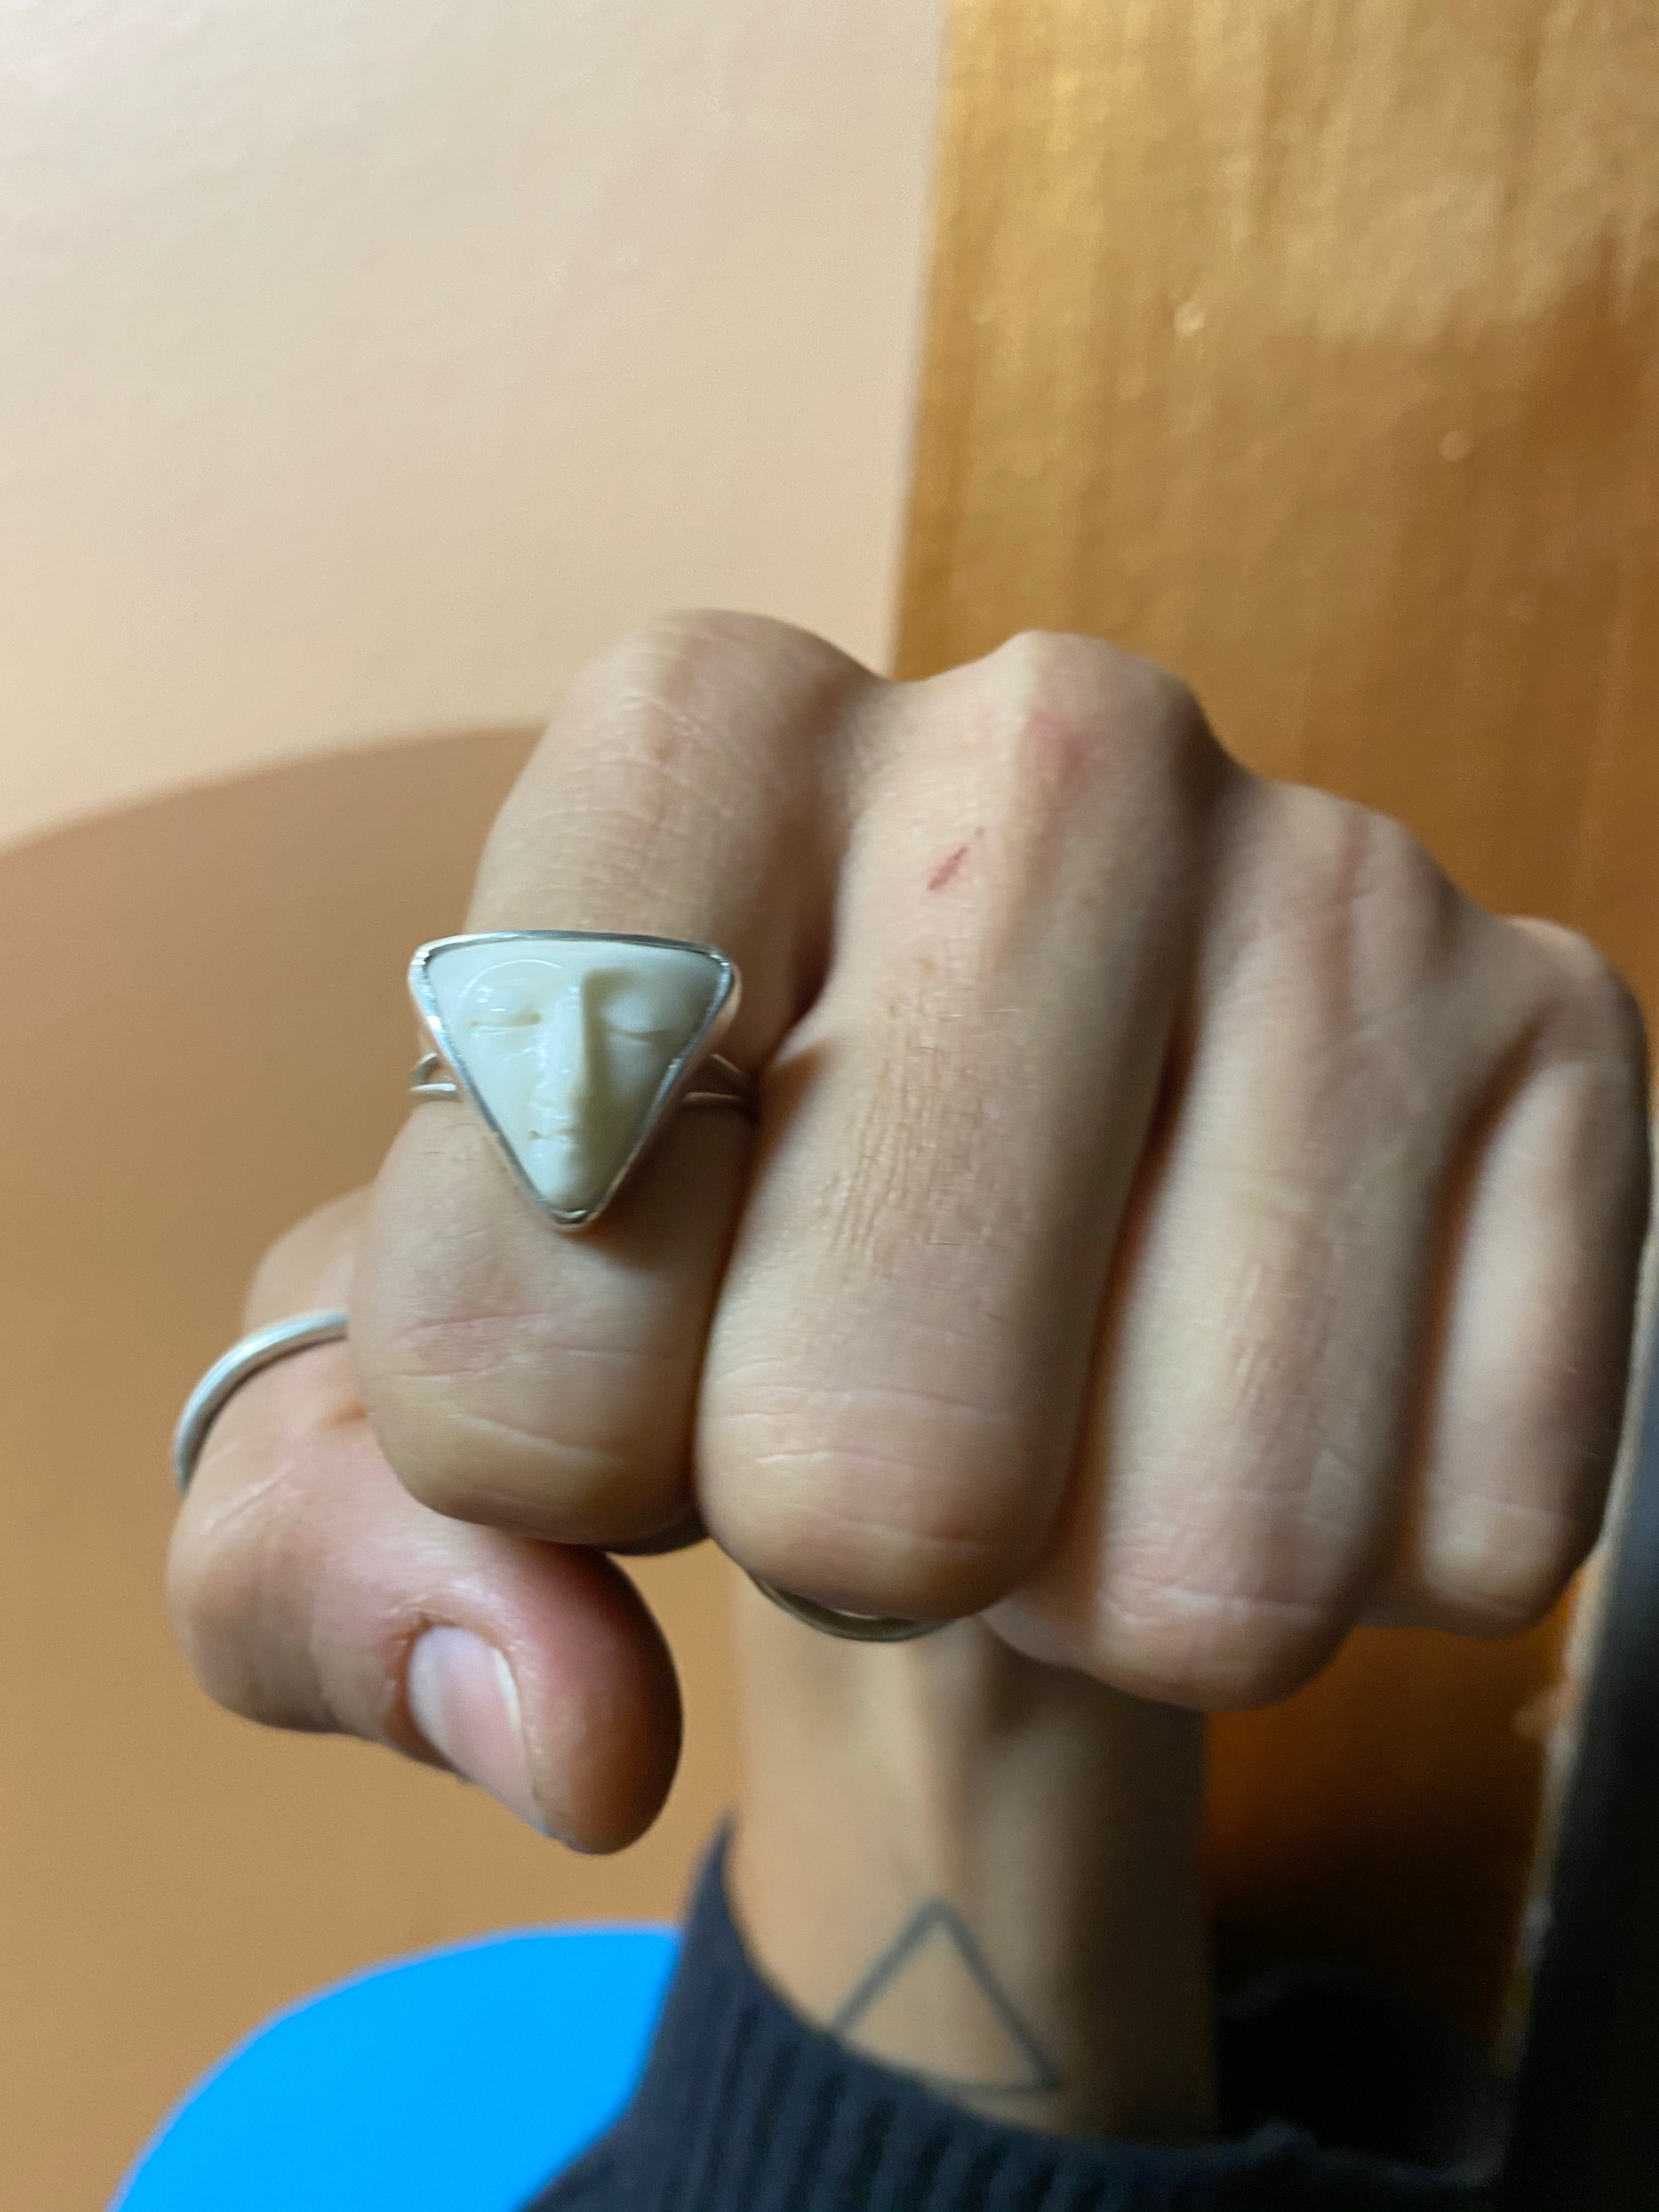 Moon Face Rings